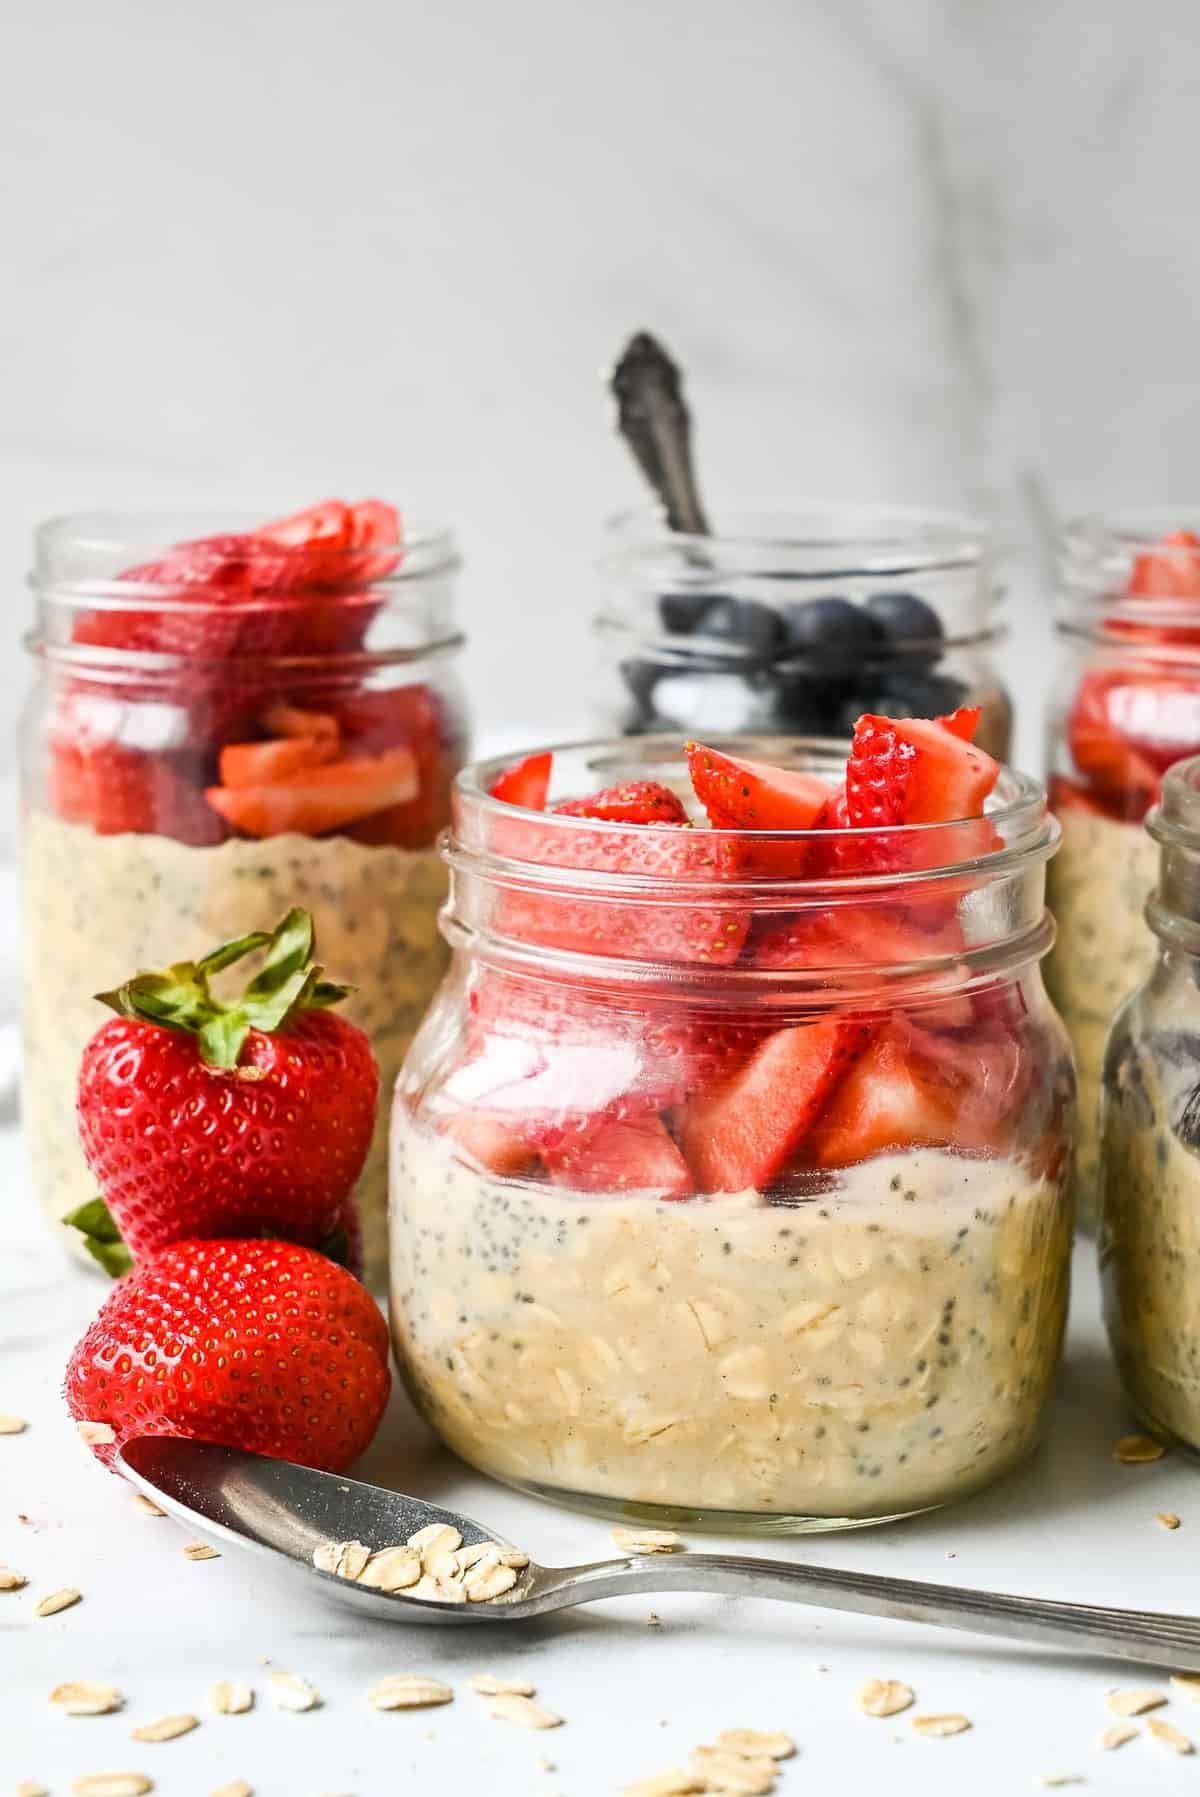 overnight oats in jars topped with berries